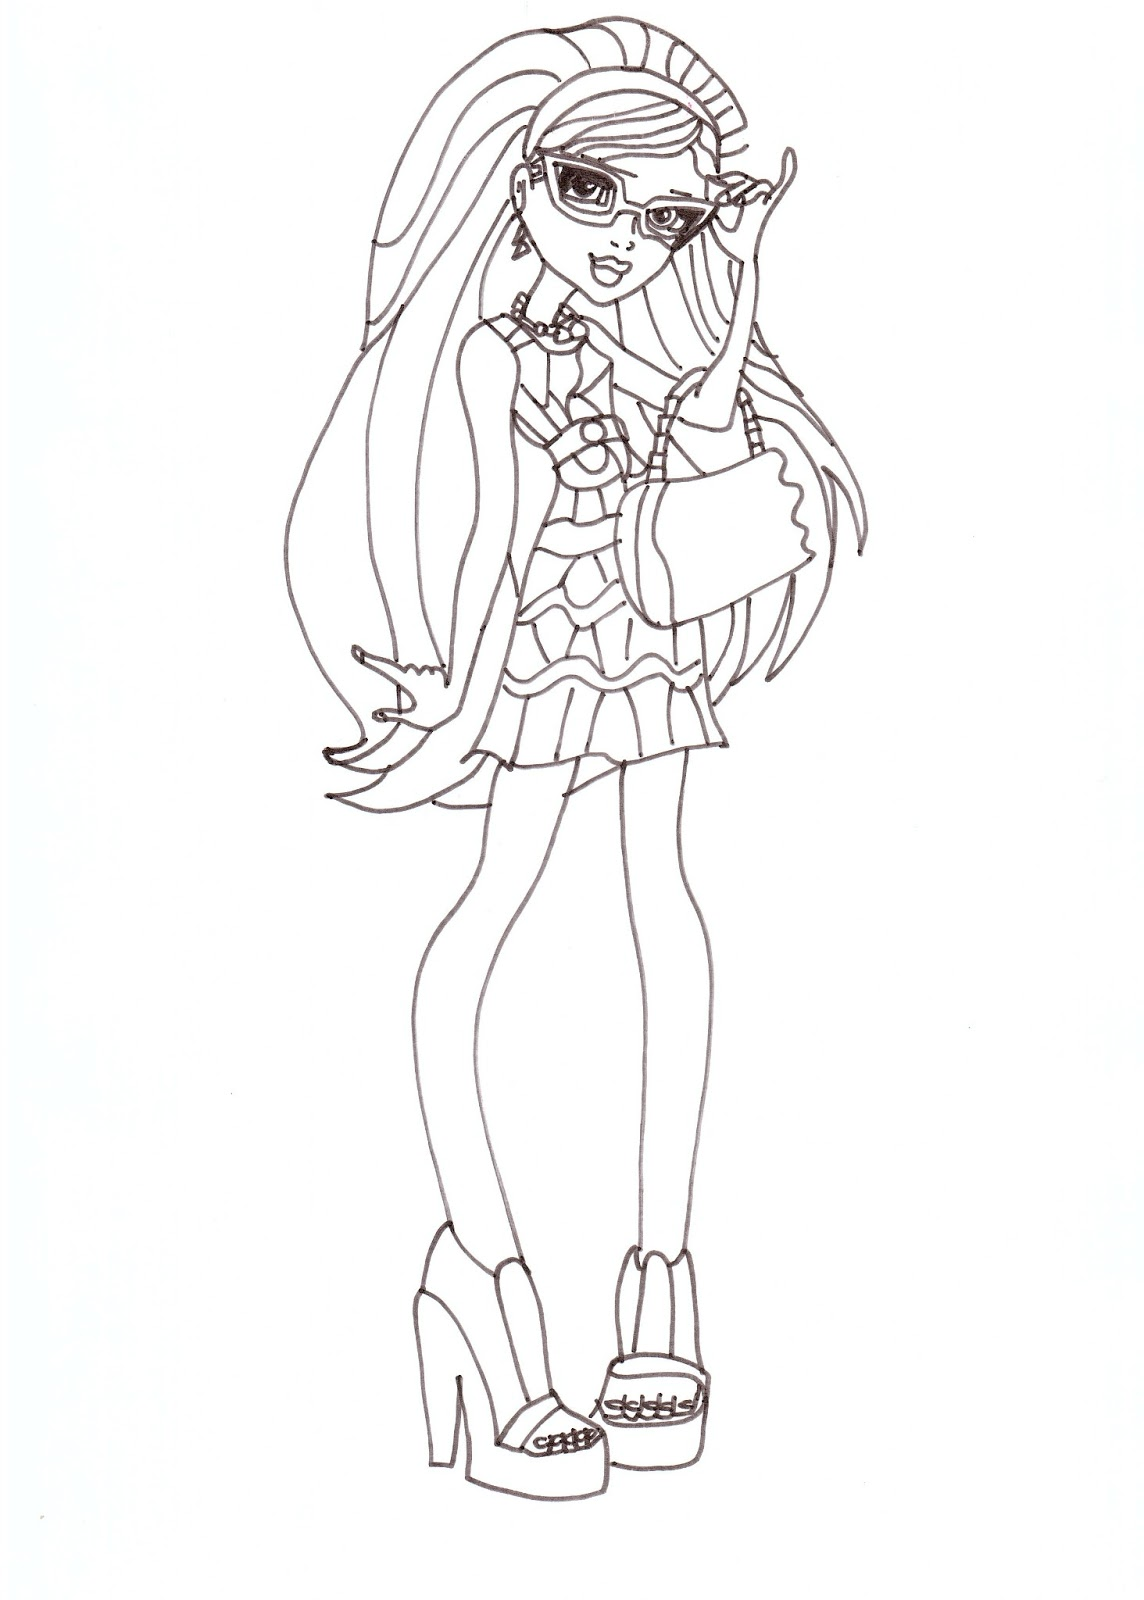 Free Printable Monster High Coloring Pages: Ghoulia